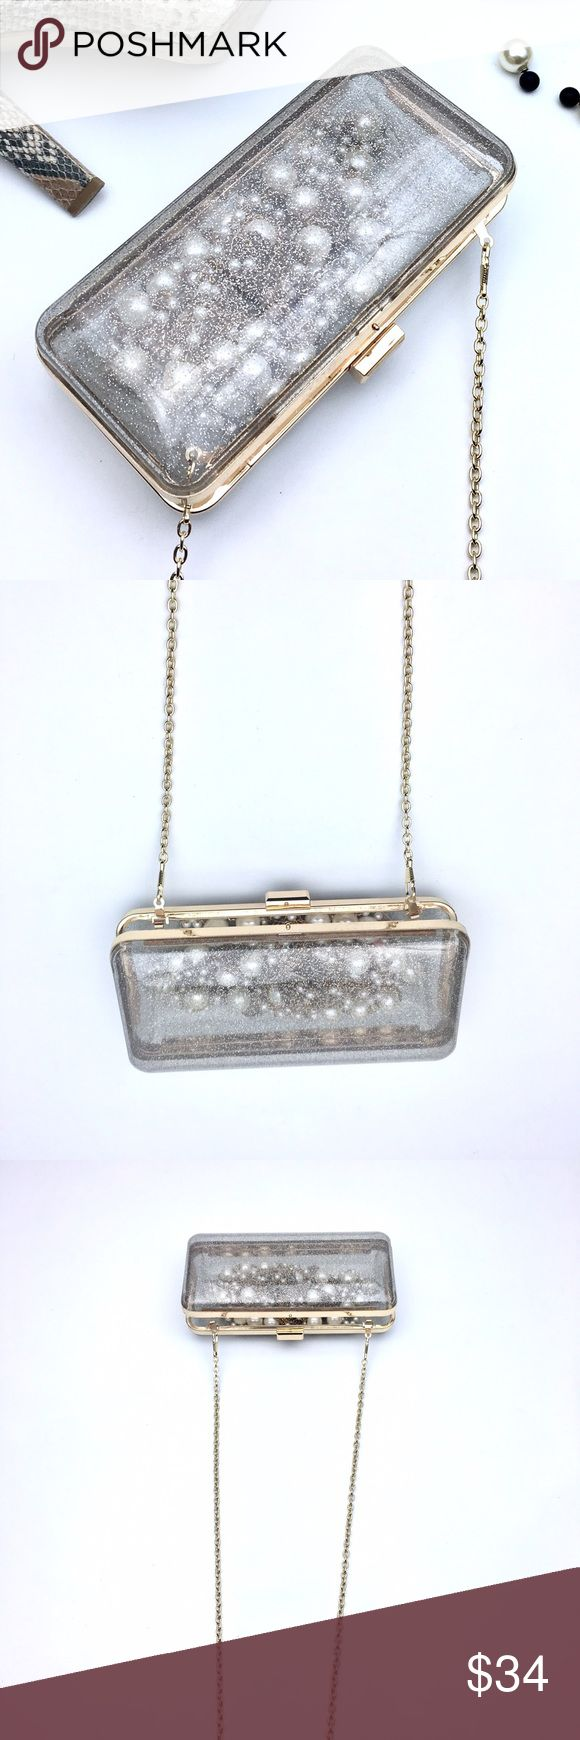 Glittery Transparent Acrylic Clutch Gold Hardware Glittery Melie Bianco Clutch with Gold Hardware. Chain can be removed. This fits an iphone 7 plus perfectly and your lipstick etc. The transparency is a cool feature. Necklace for sale too. New with tags. Melie Bianco Bags Clutches & Wristlets